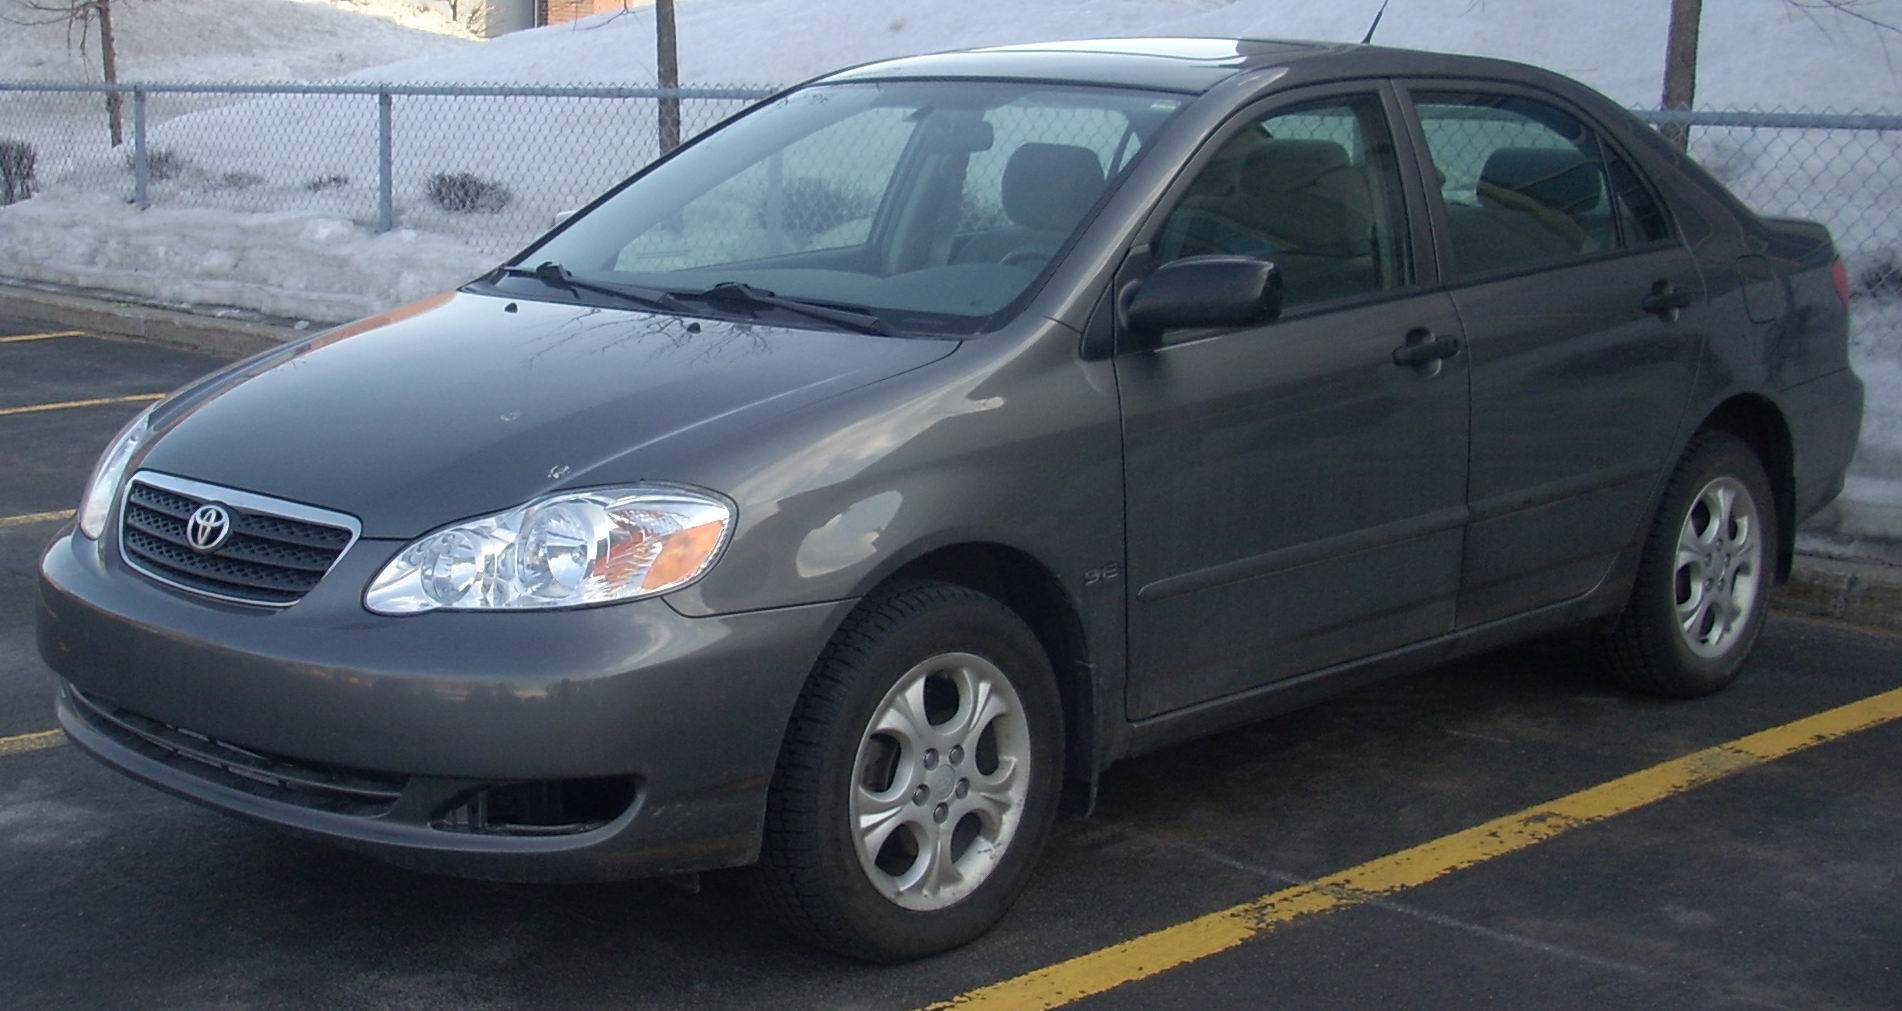 2005 Toyota Corolla Le Sedan 1 8l Manual